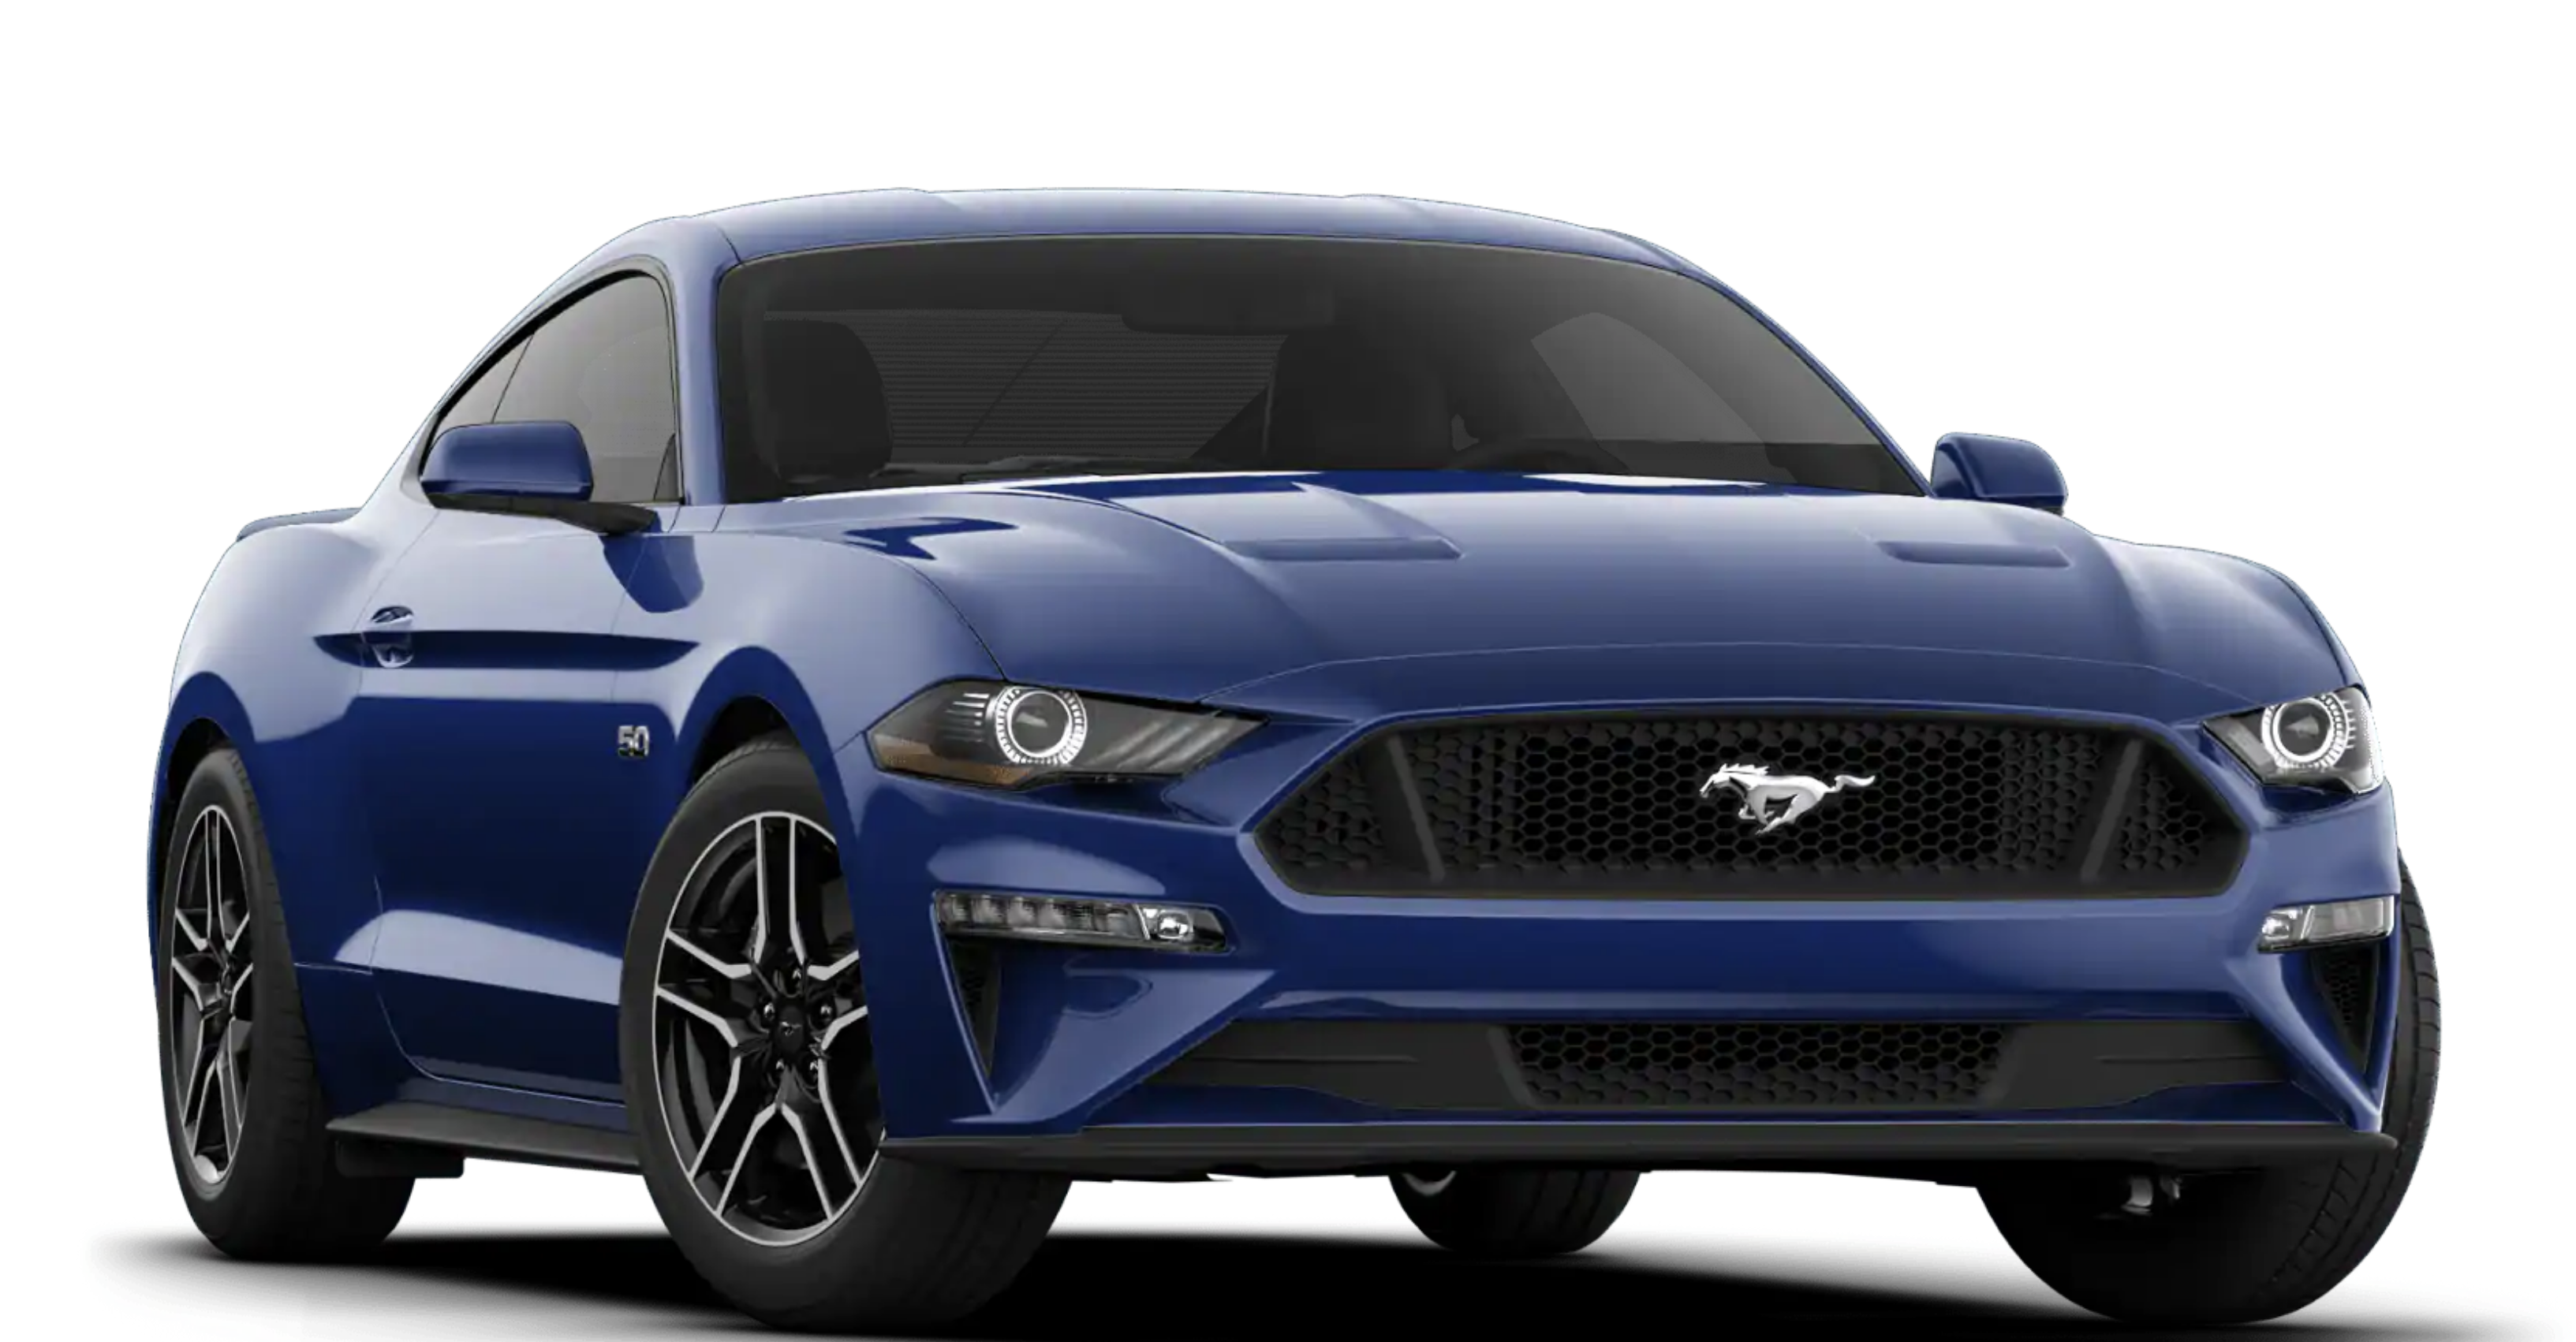 2020 Ford Mustang GT in Kona Blue